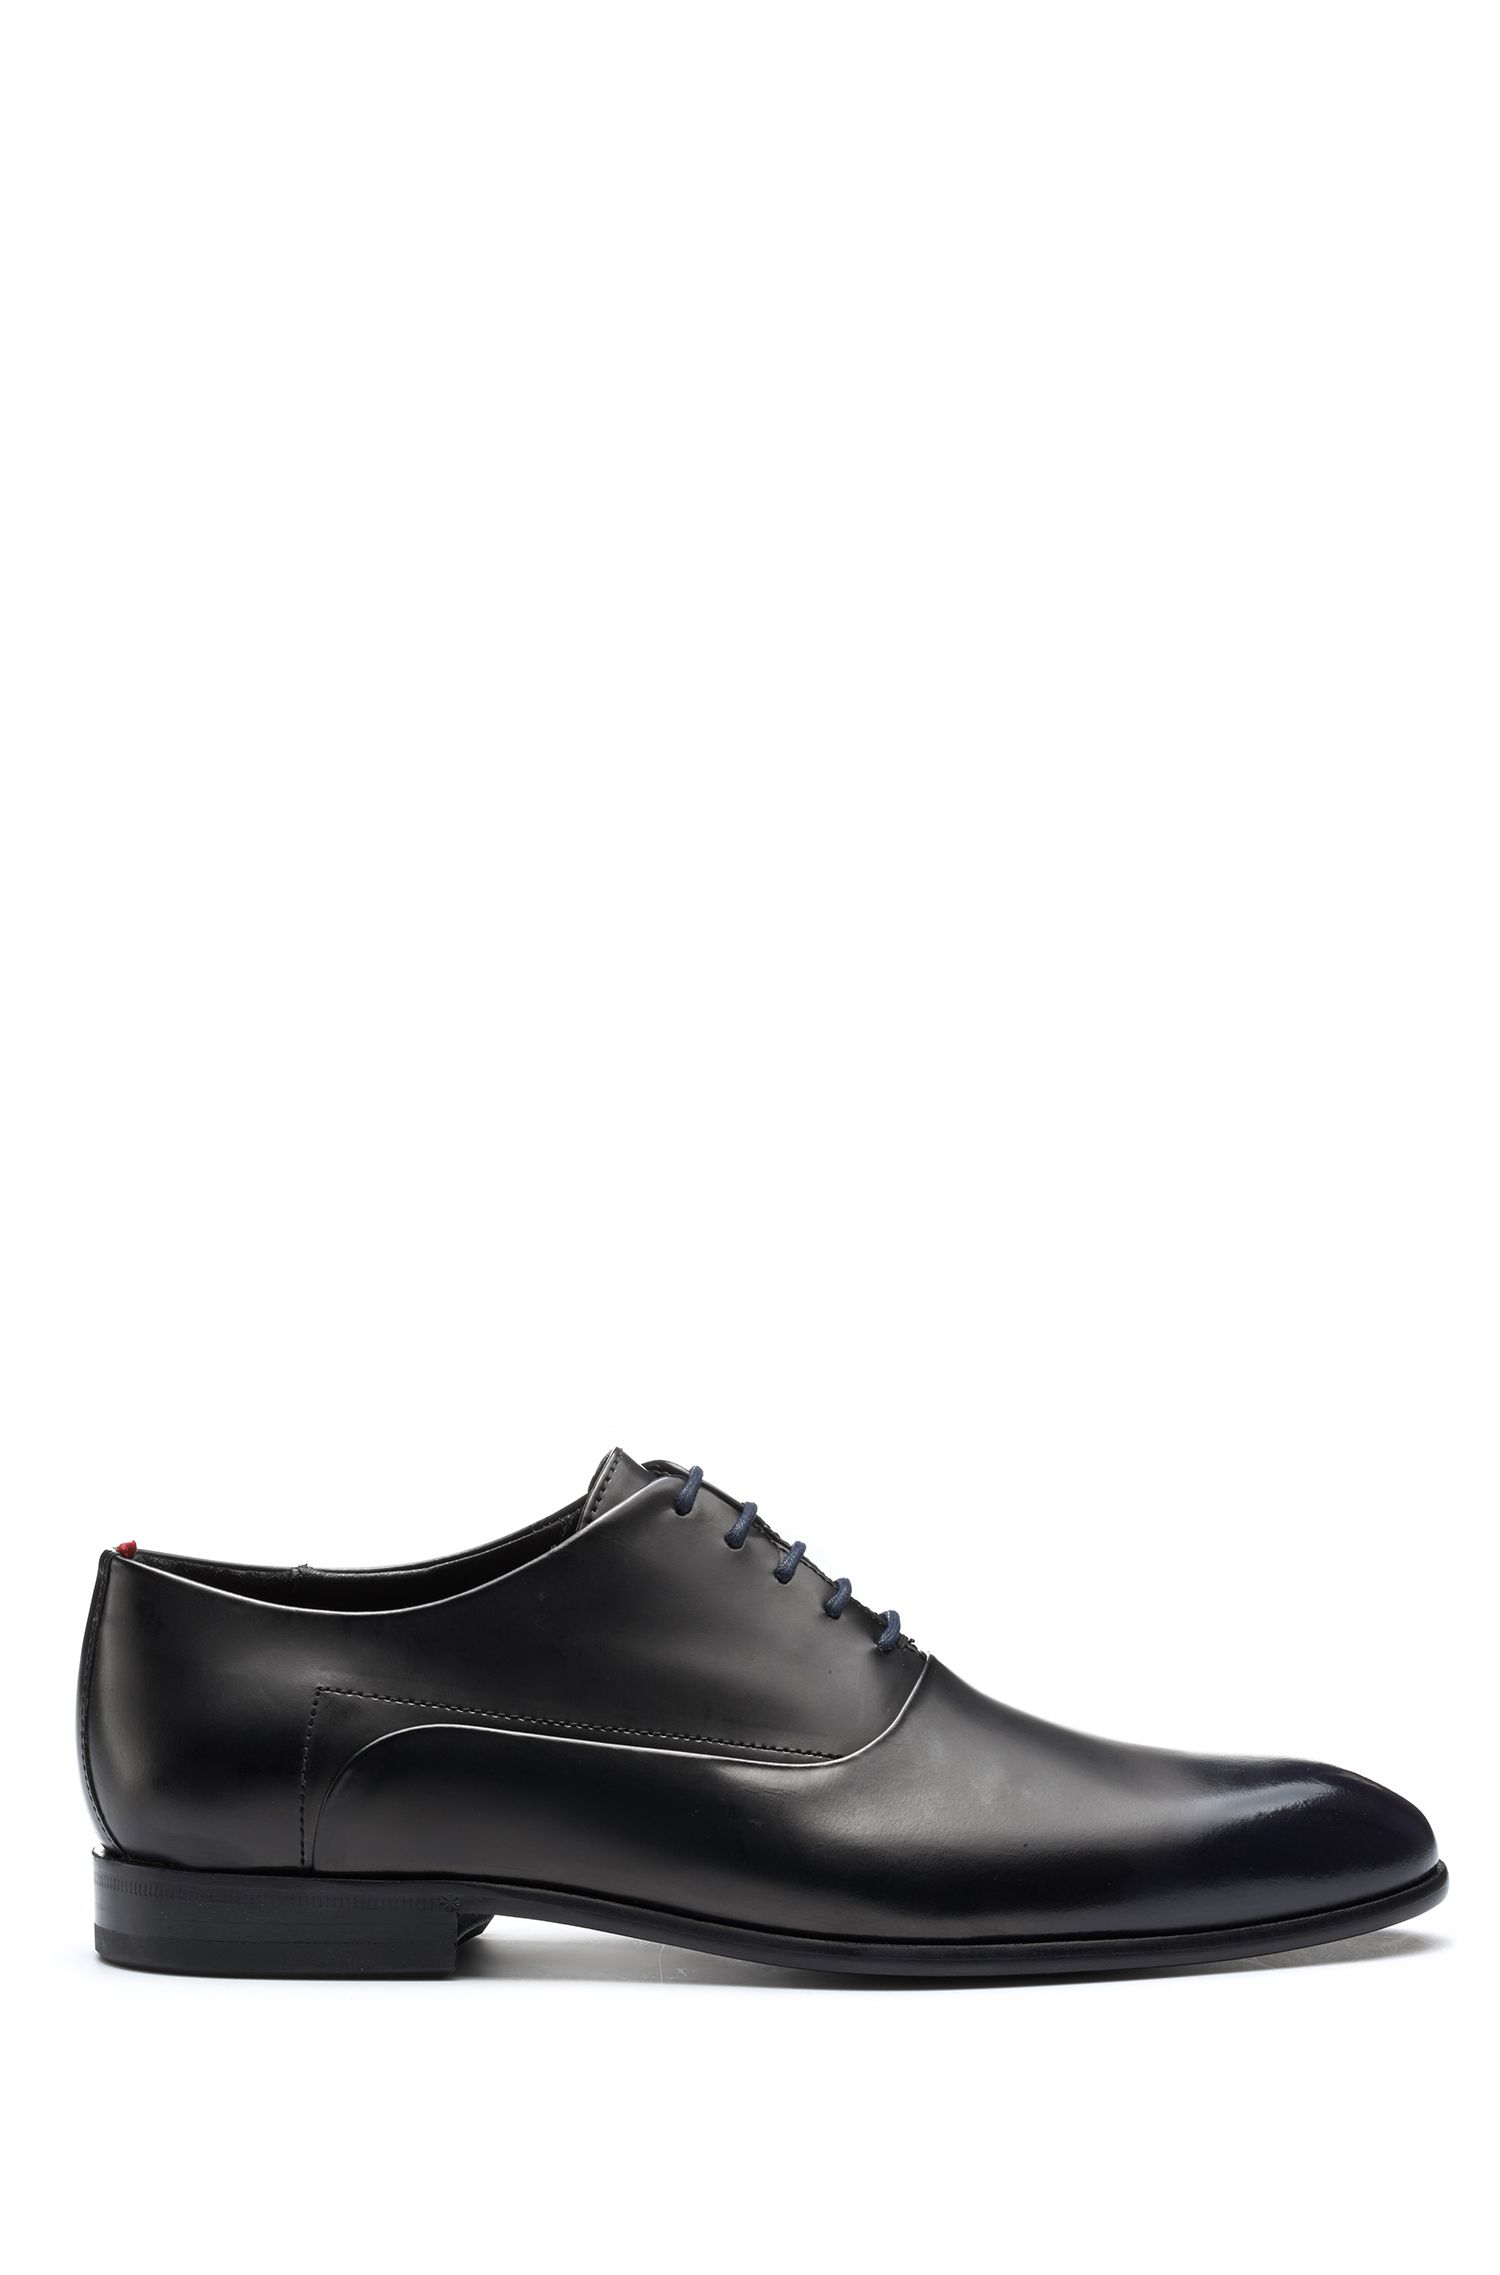 Oxford shoes with brush-off leather uppers, Dark Blue